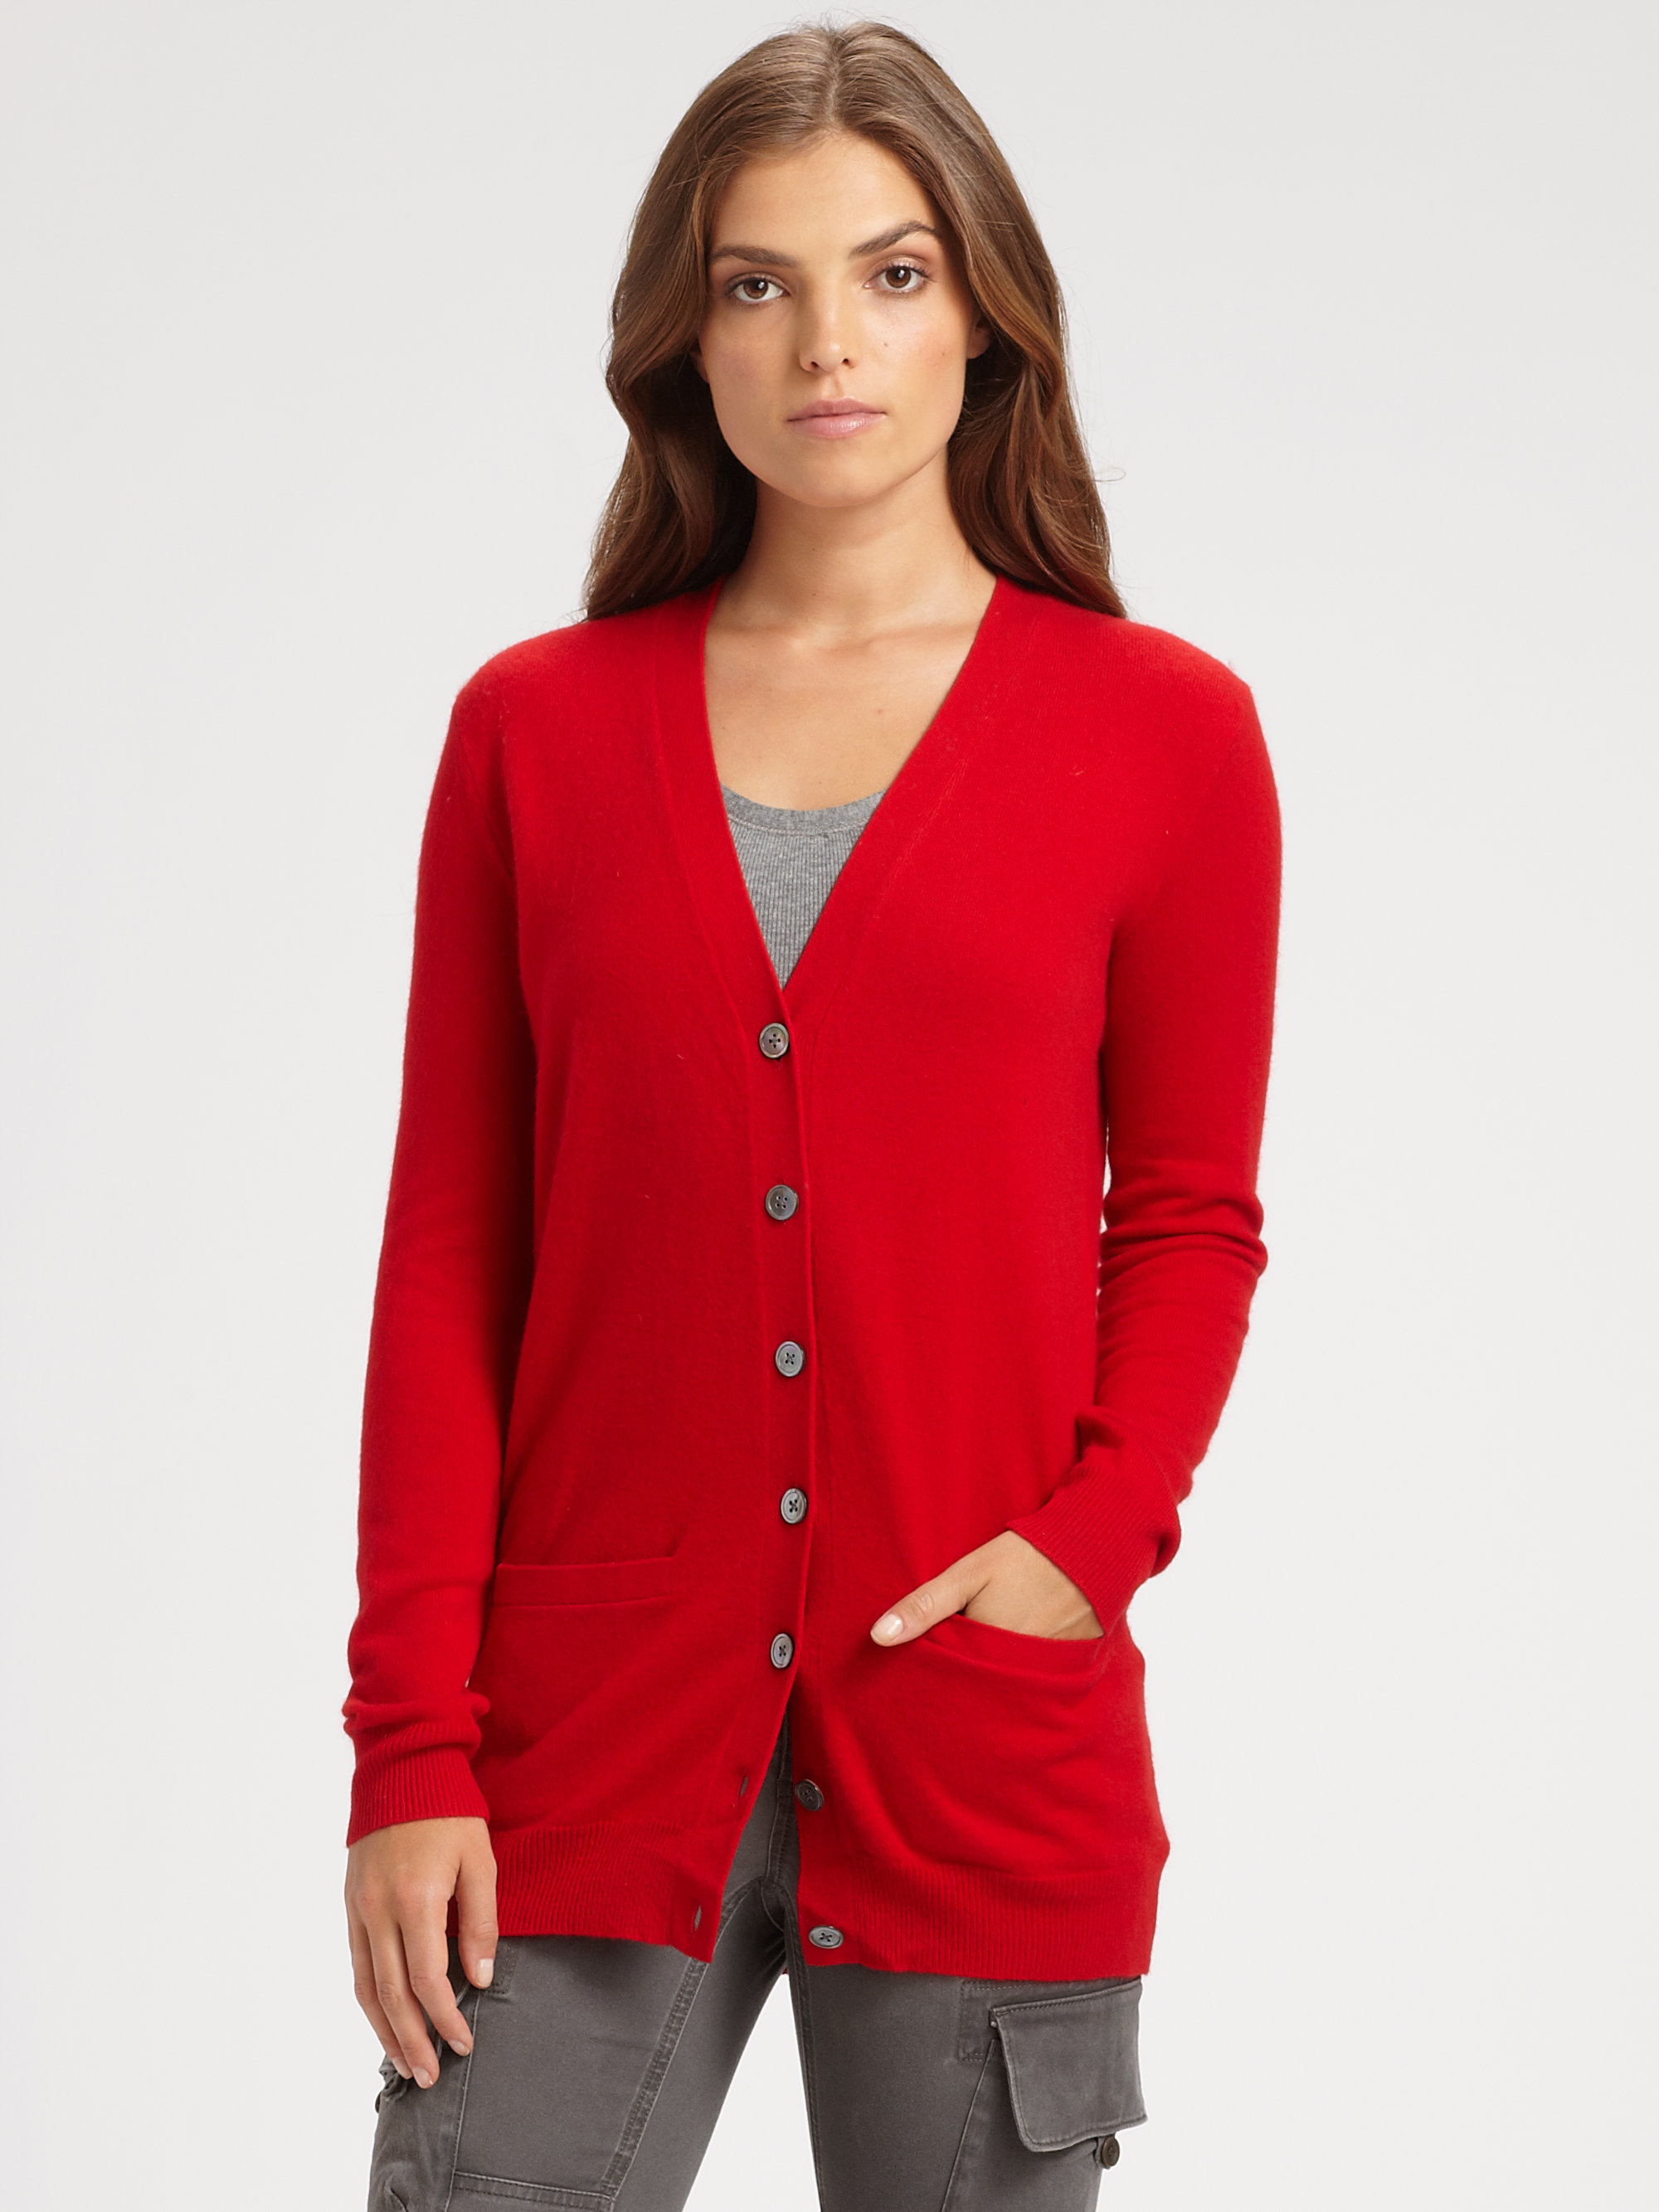 Cashmere Red Cardigan - Gray Cardigan Sweater